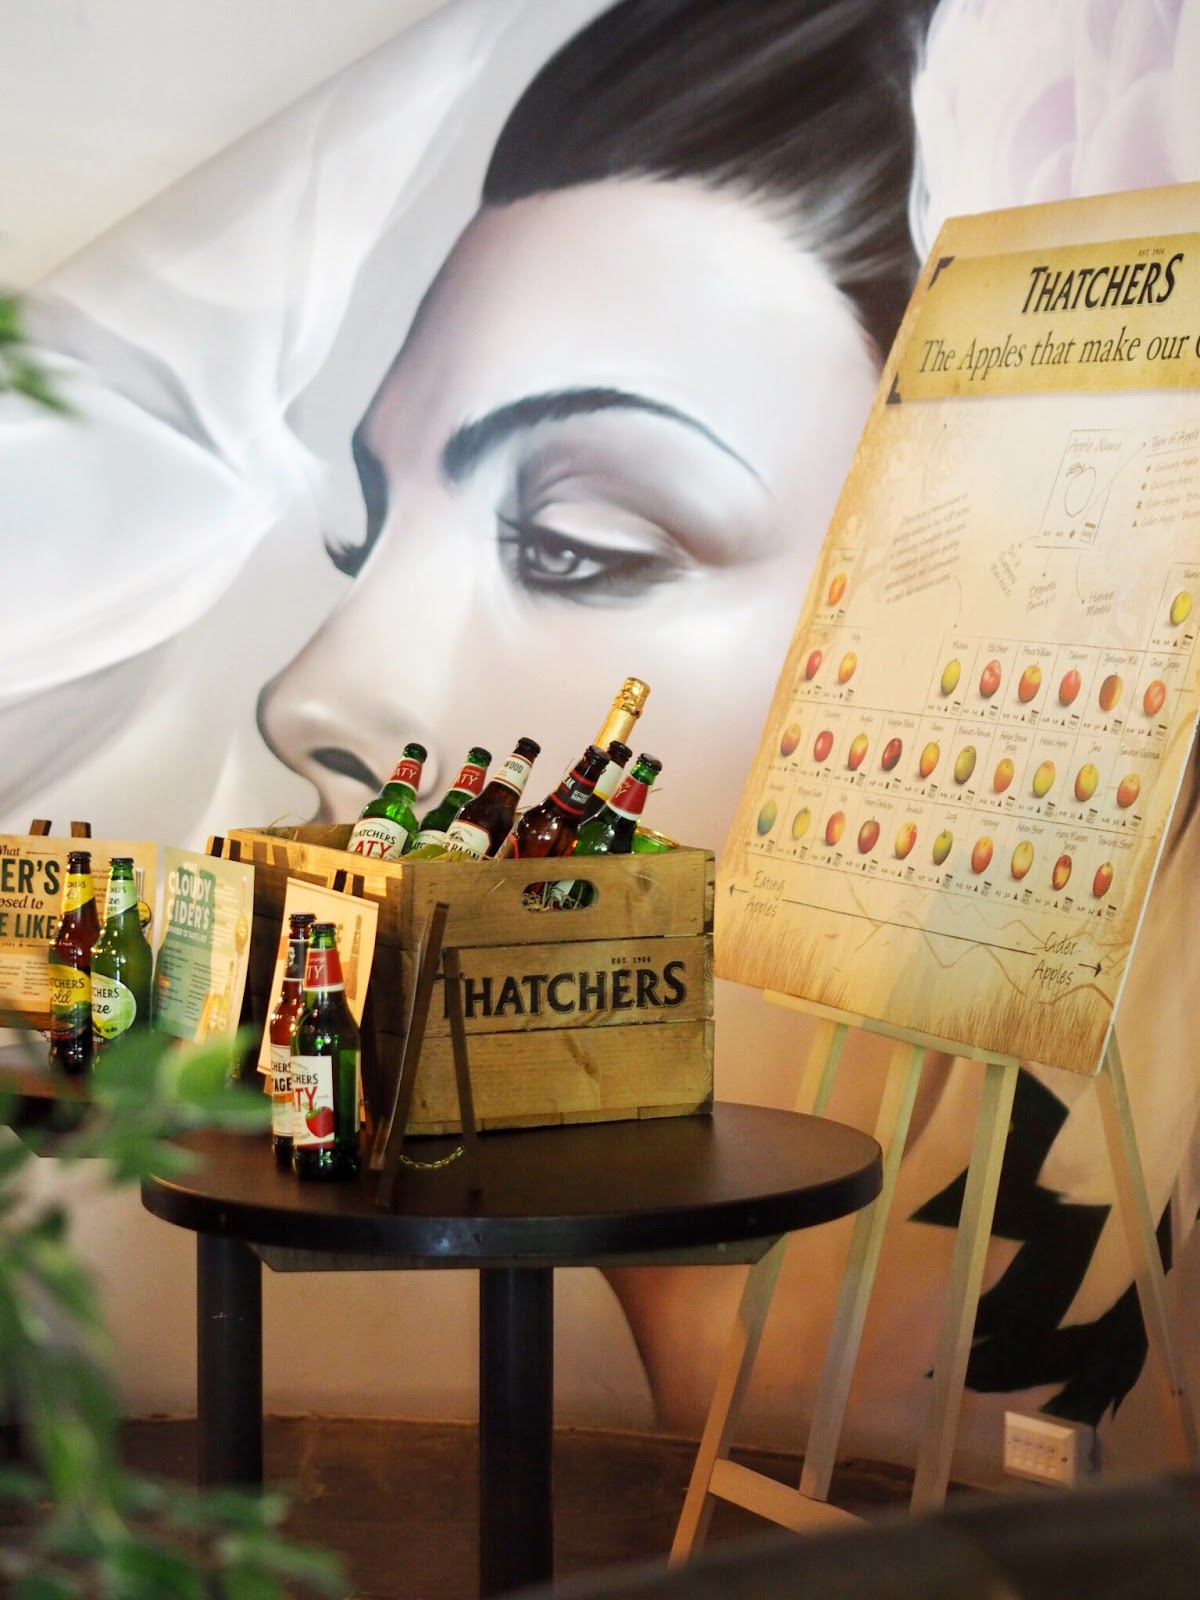 Thatchers Cider in crate infront of Pasture Jody Art Wall mural